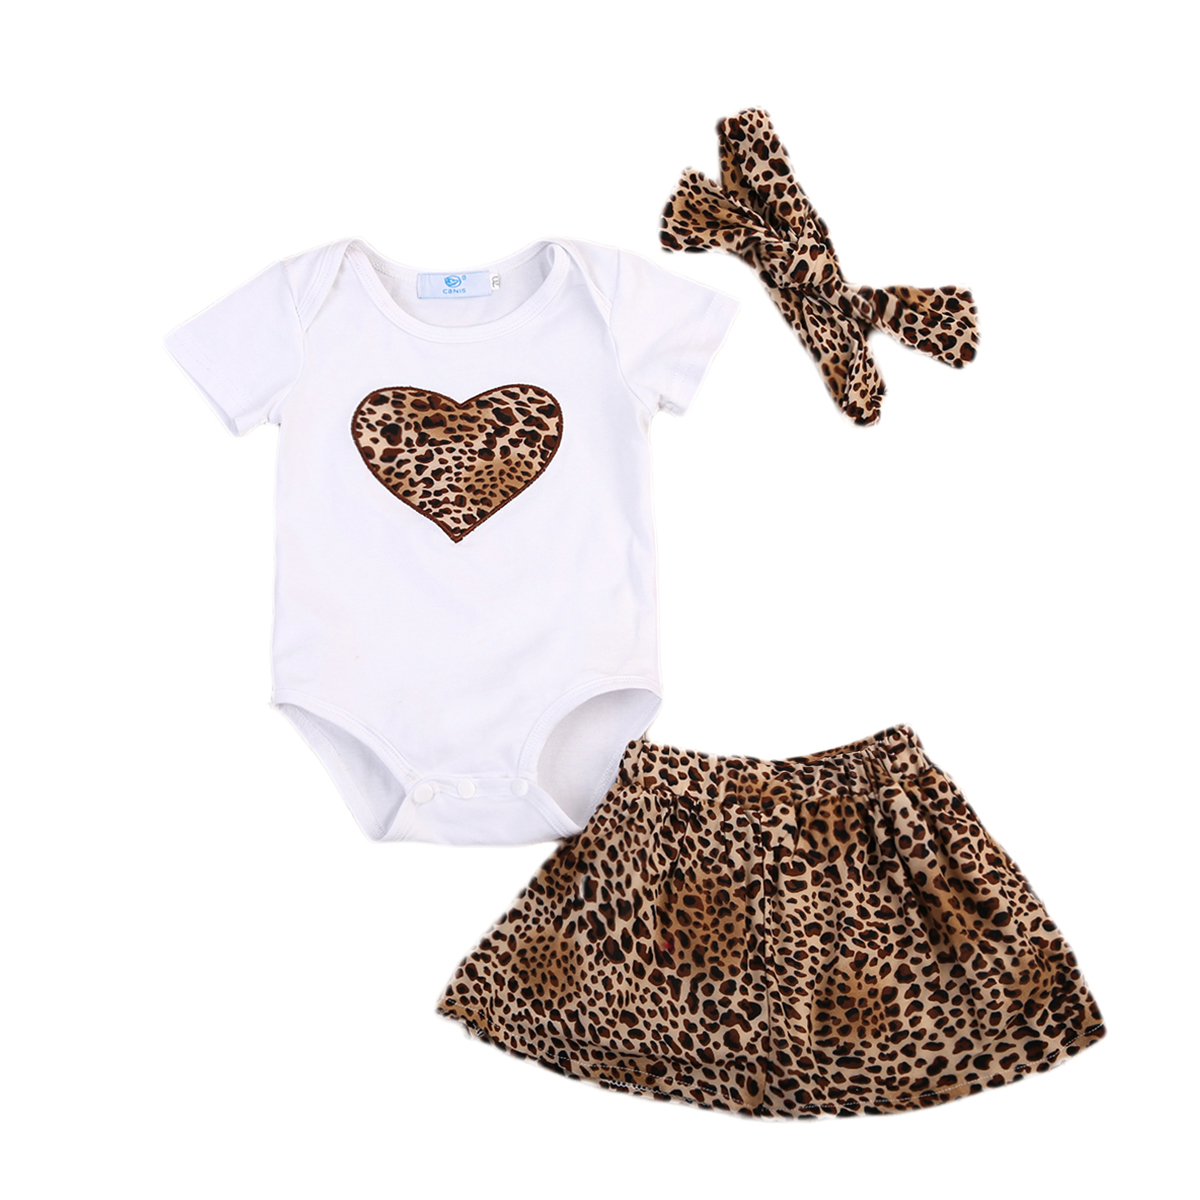 BABY BOYS DUNGAREE BODYSUIT 2PC OUTFIT SET BEAR THEME EX UK STORE 0-9M NEW